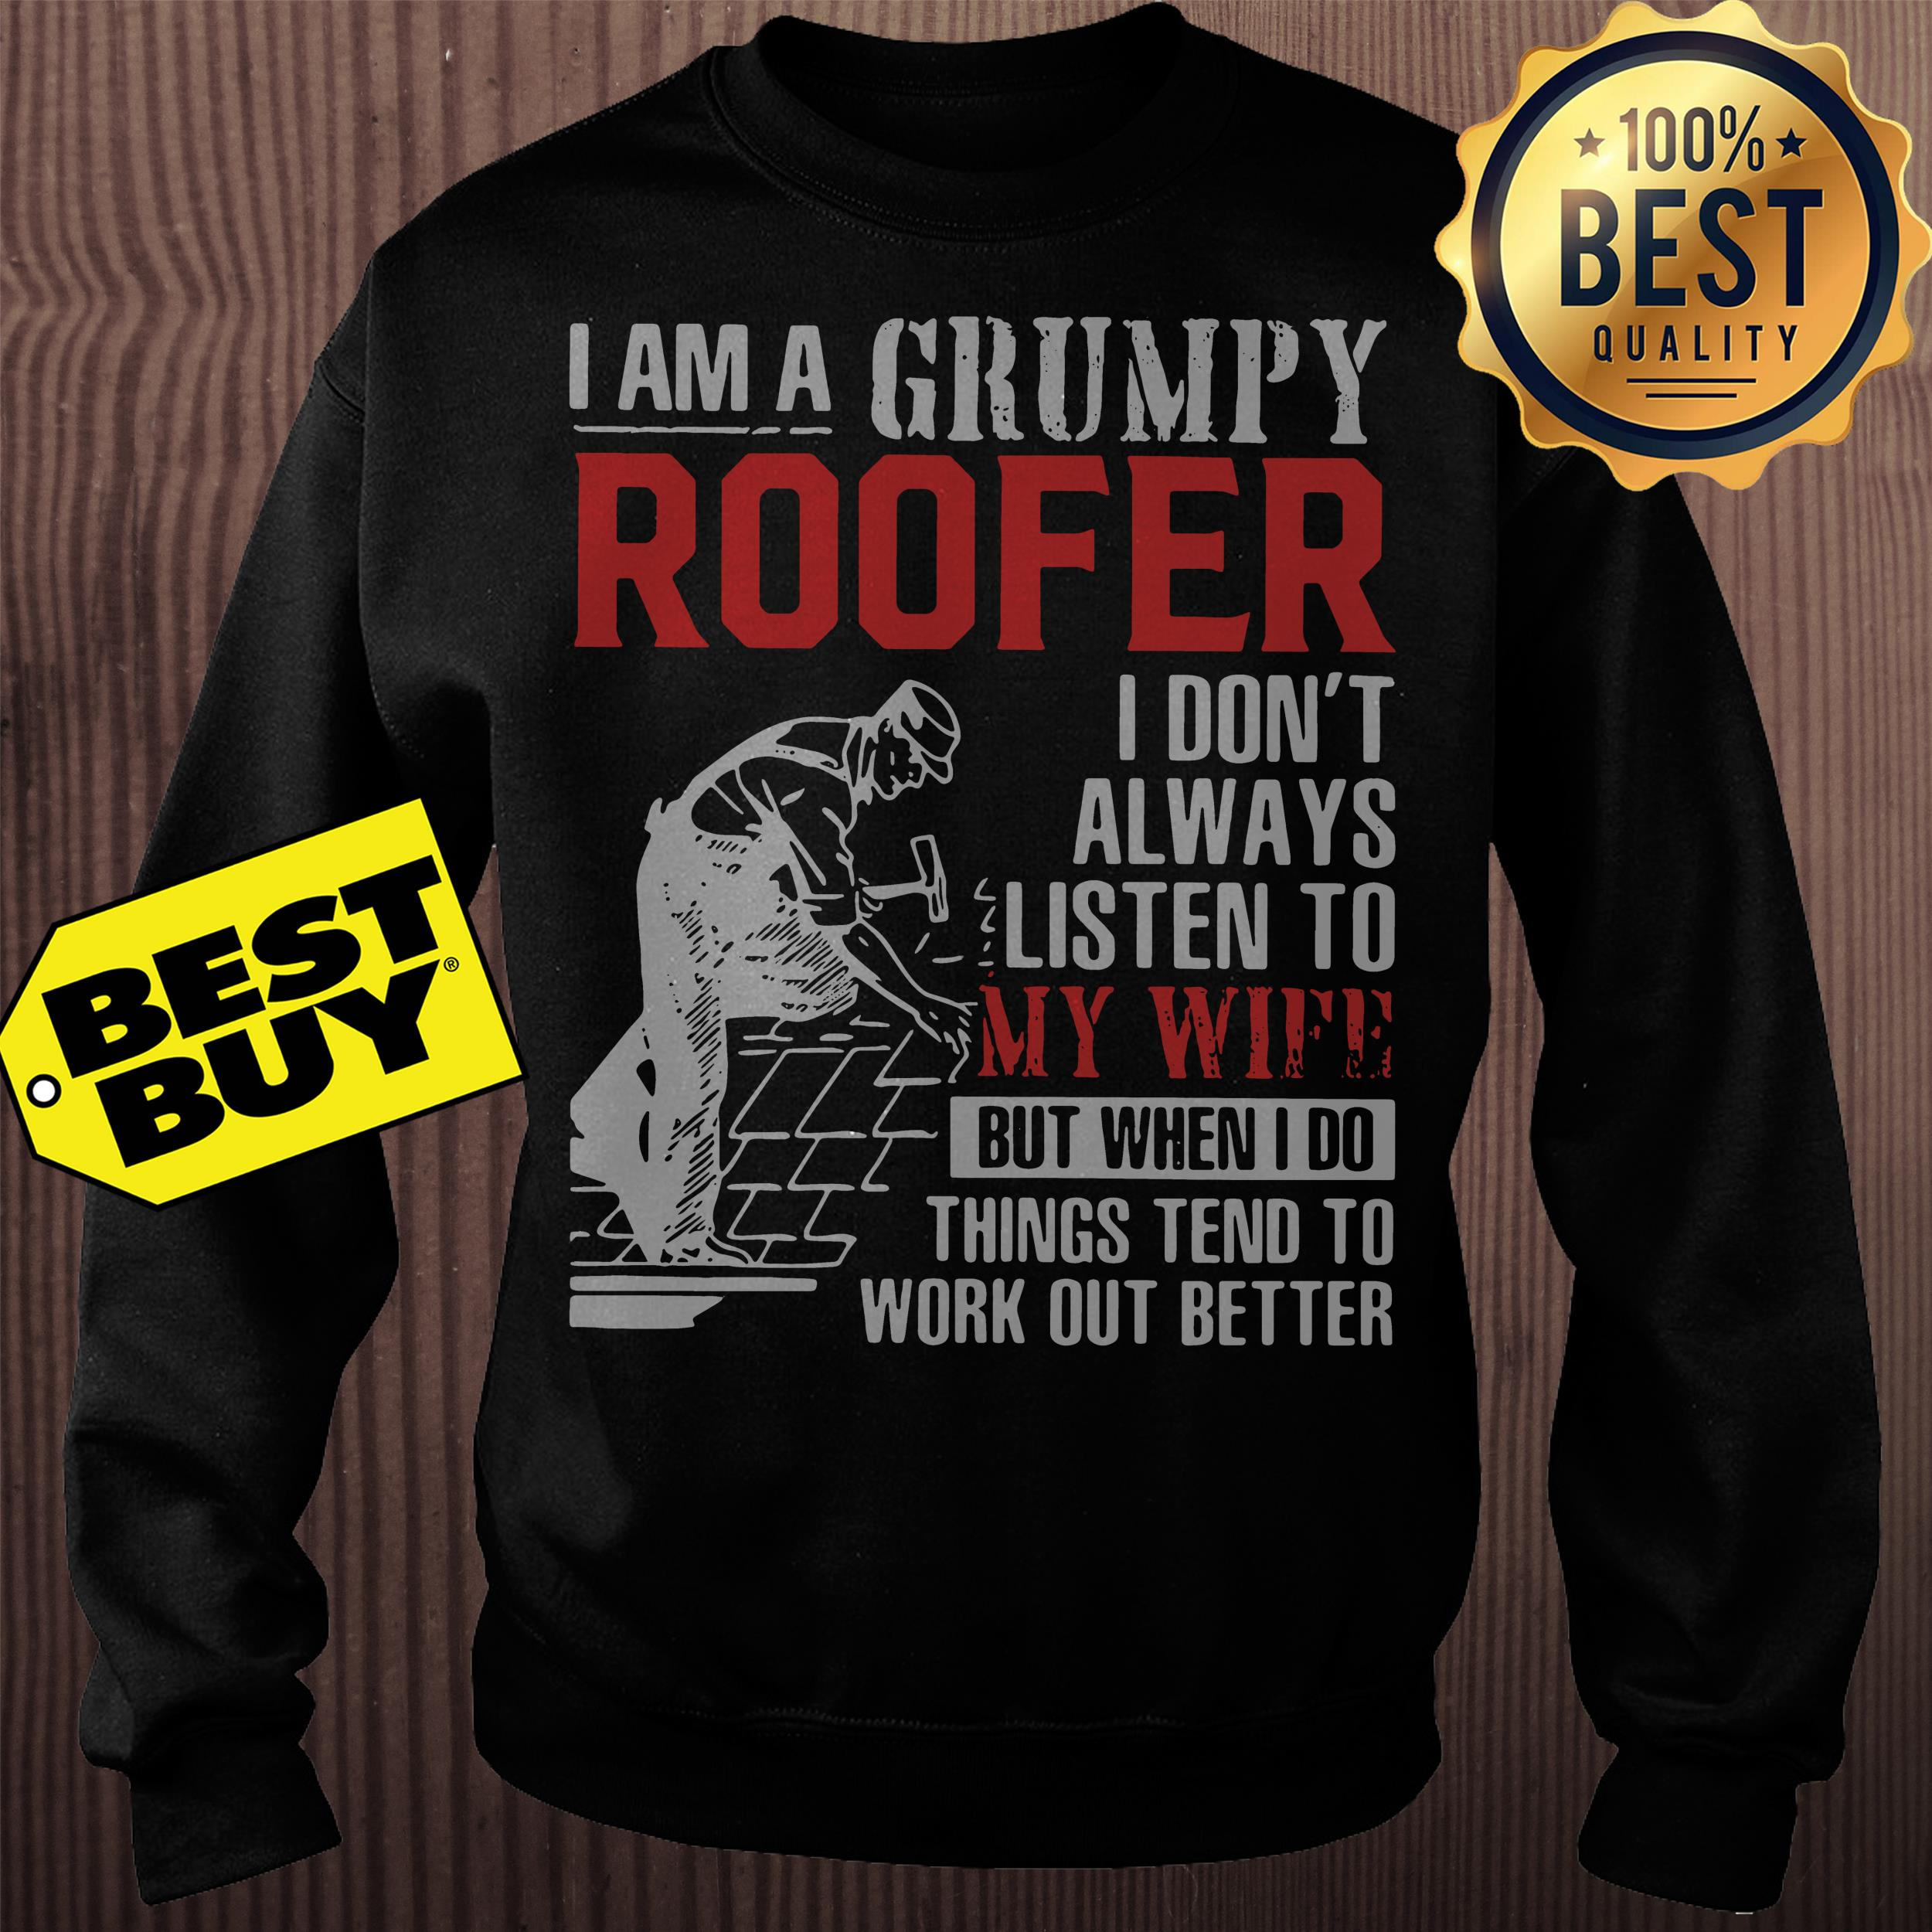 Grumpy Roofer I Don't Always Listen To My Wife But When I Do Things Tend Sweatshirt